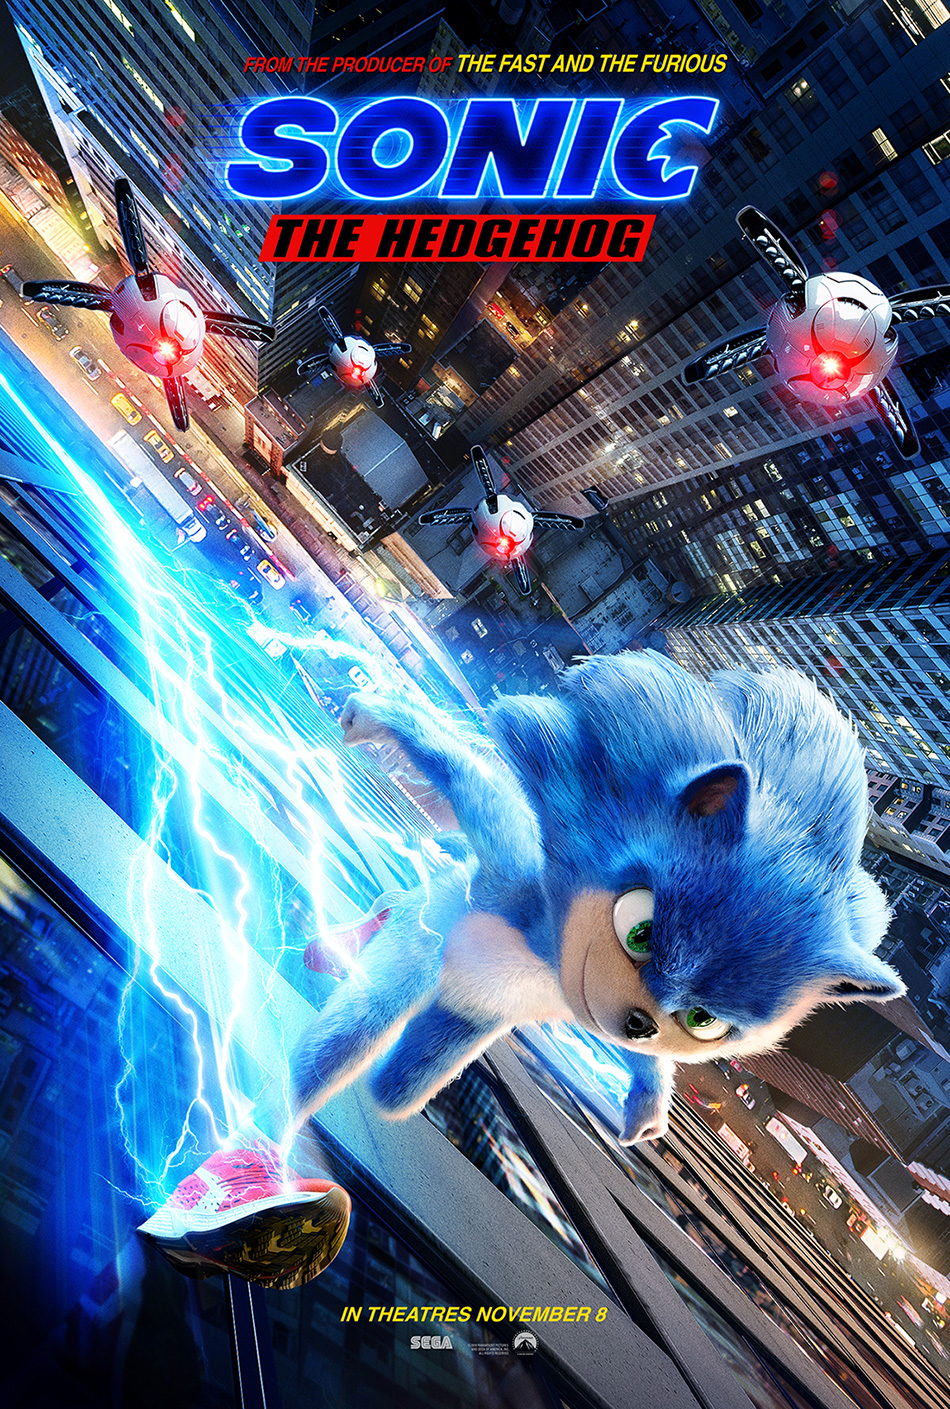 Sonic the Hedgehog 1-Sheet.jpg